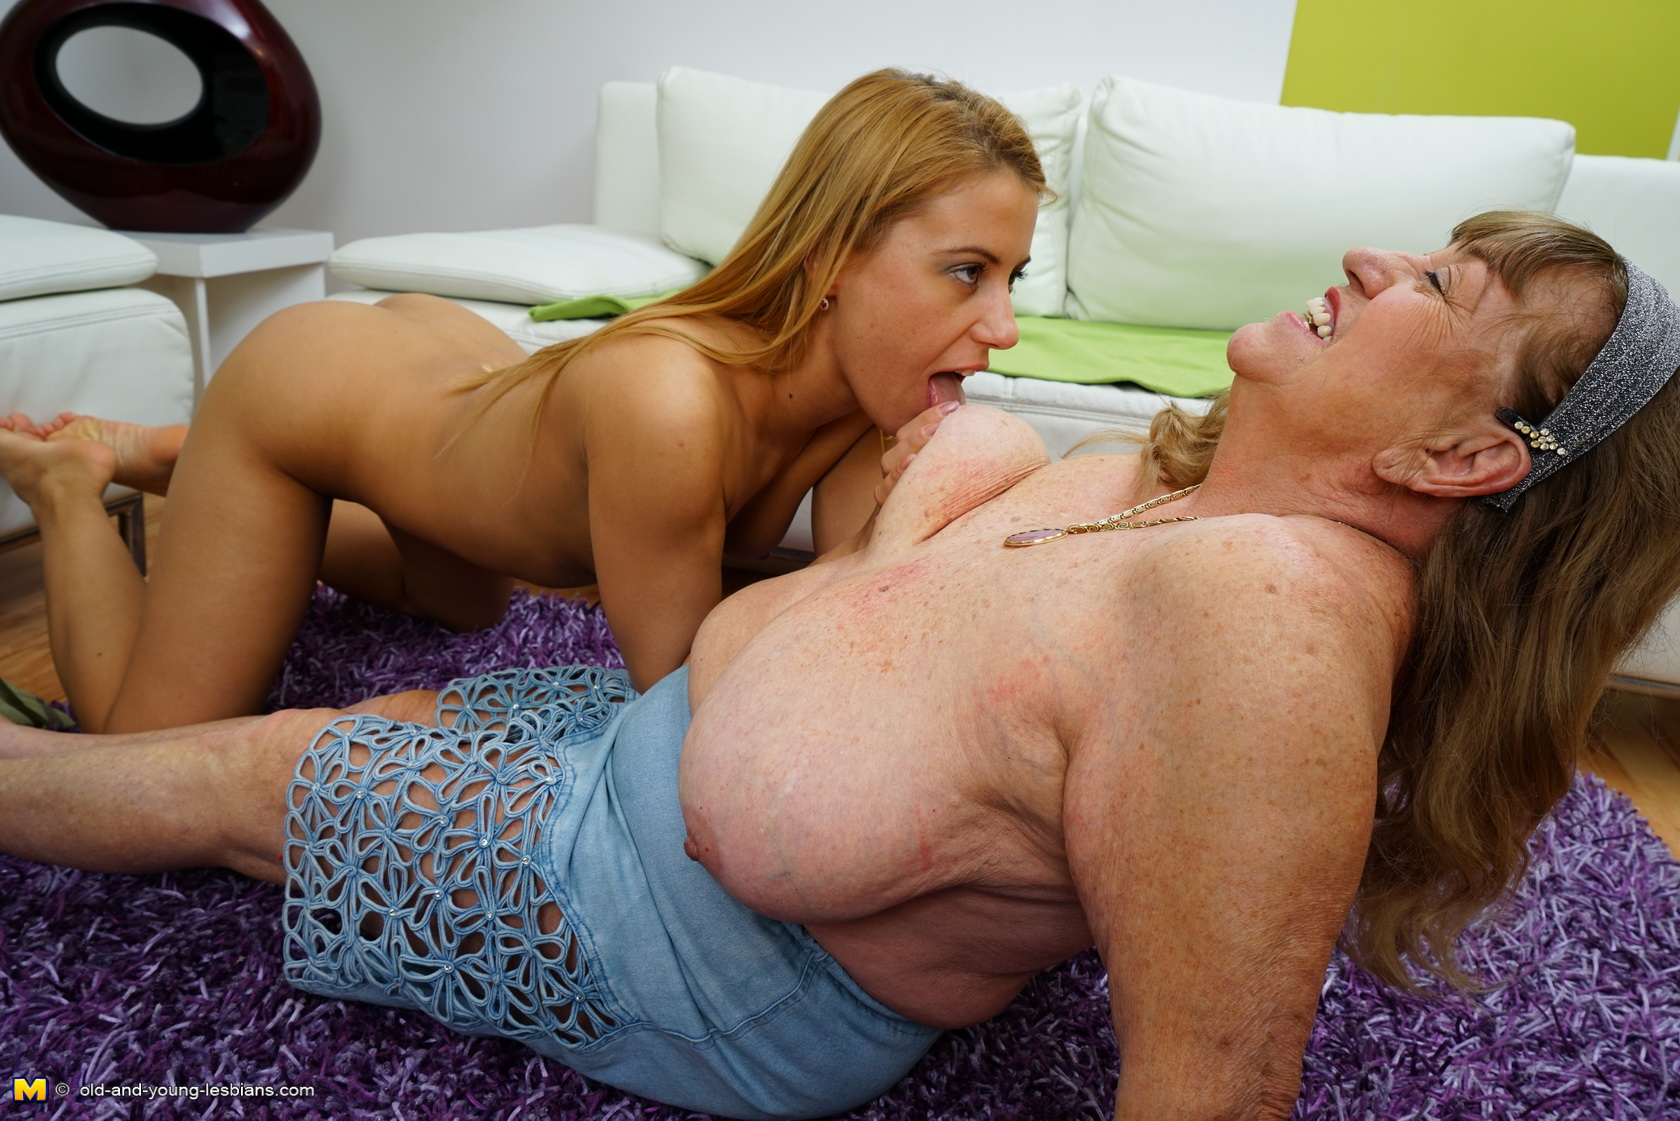 girls first time seeing big dick